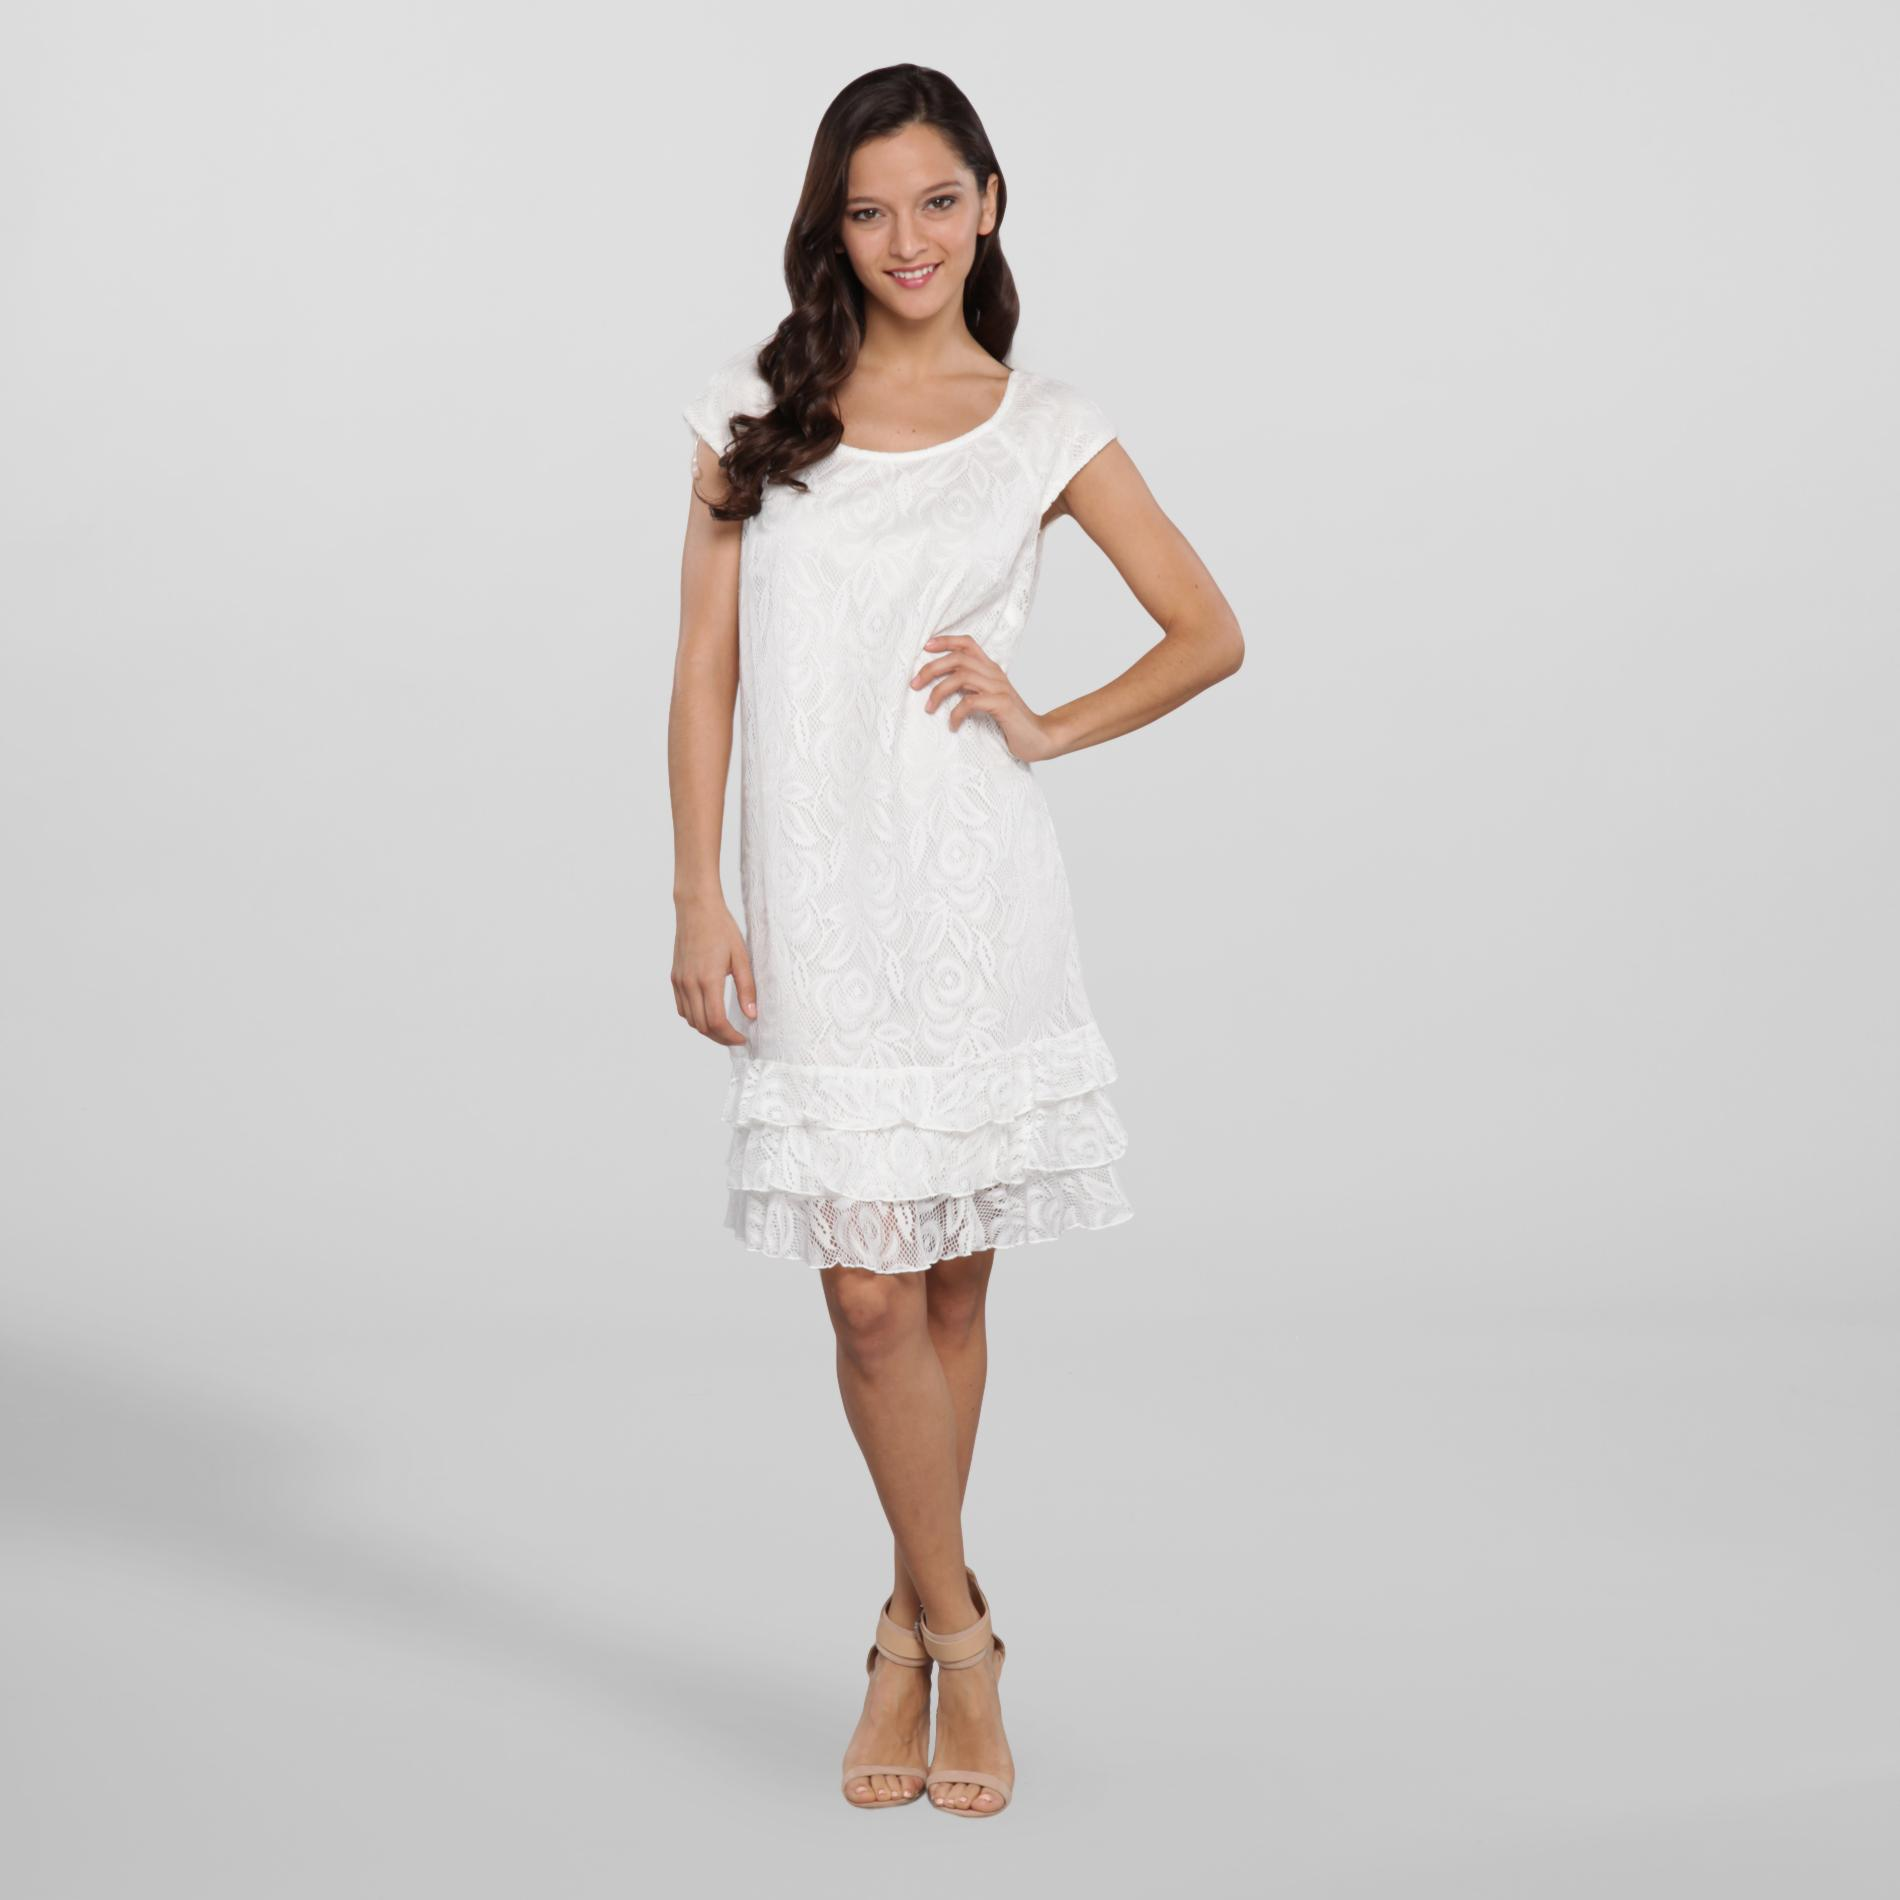 Darian Group Women's Party Dress - Floral Lace at Sears.com